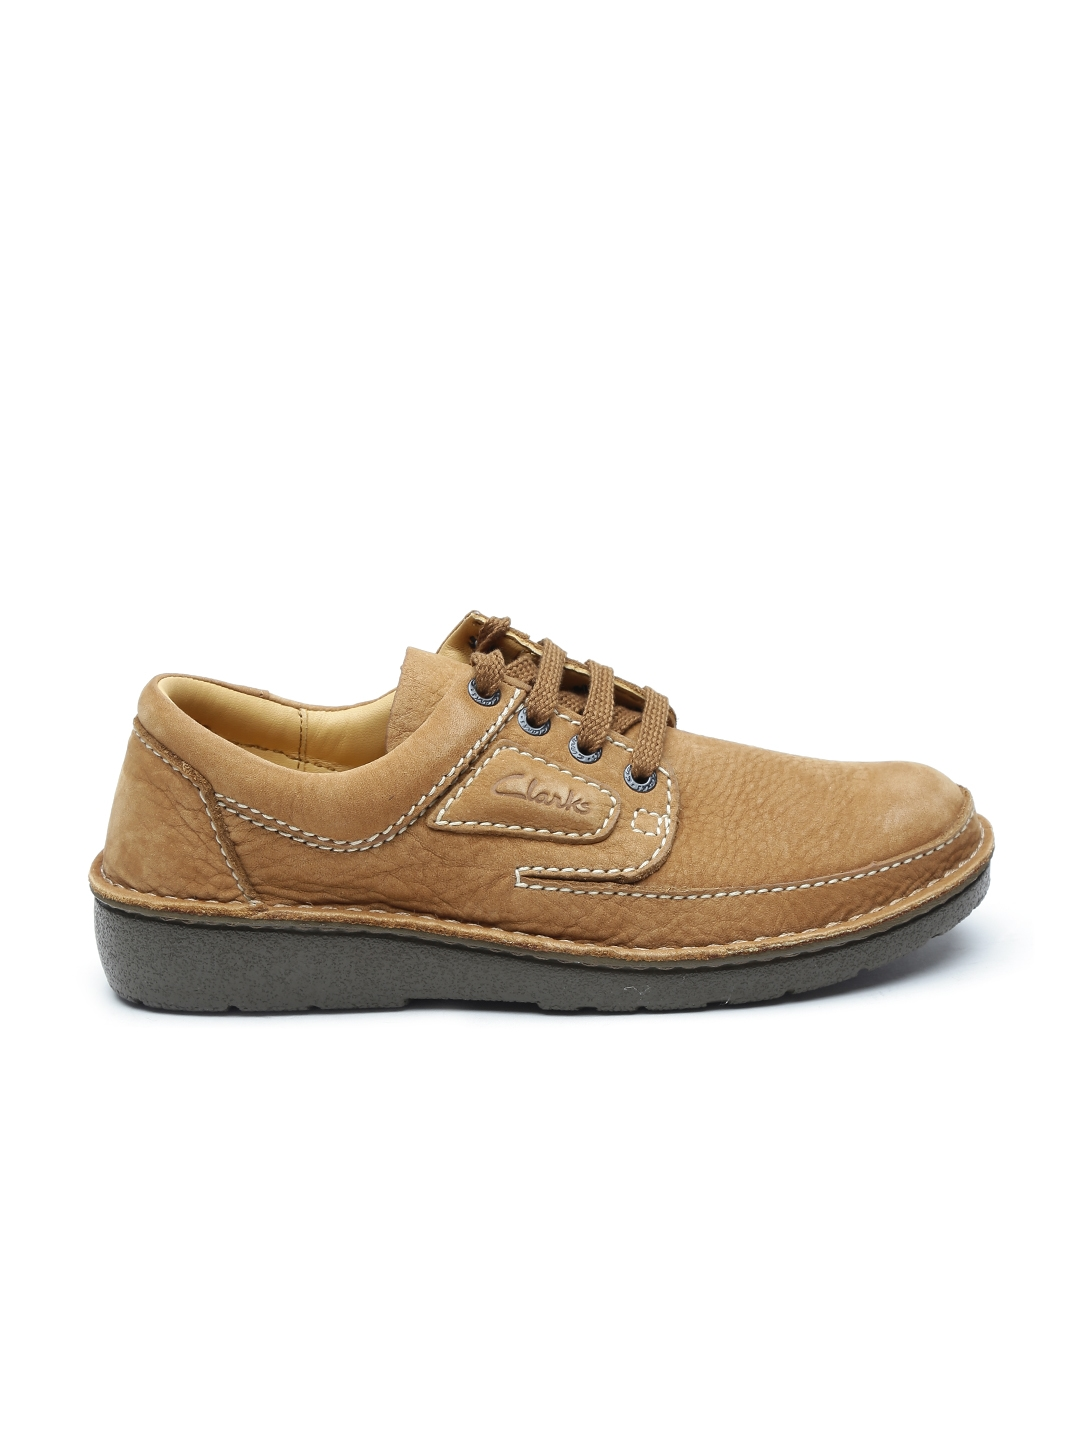 a0e95767b6a4 Buy Clarks Men Brown Nature II Birch Tumbled Nubuck Leather Casual ...